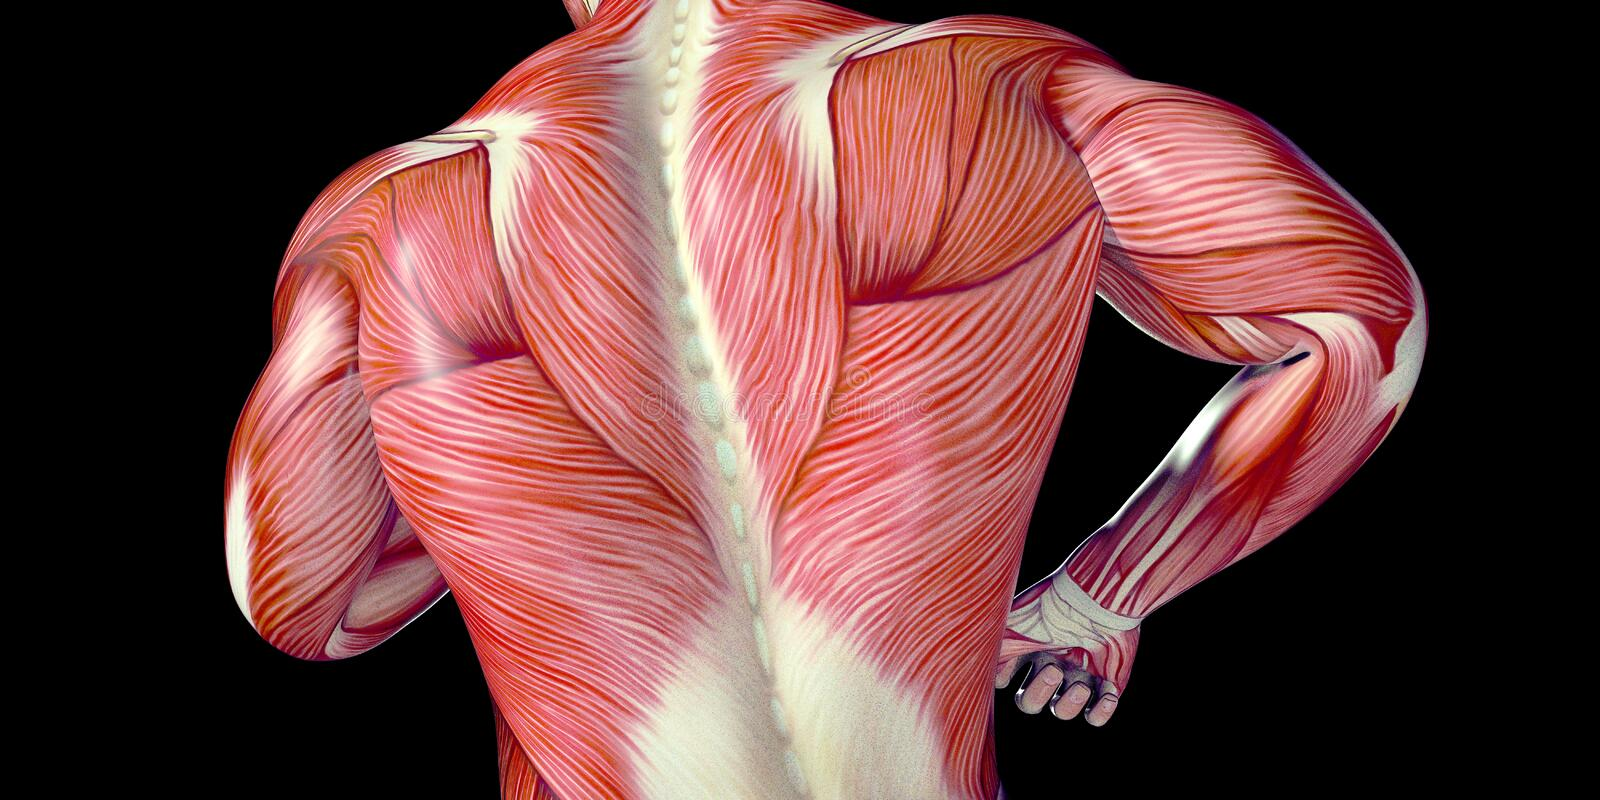 Human Male Body Anatomy Illustration of a human back with visible muscles. Human Male head Anatomy Illustration with visible muscles and tendons stock illustration